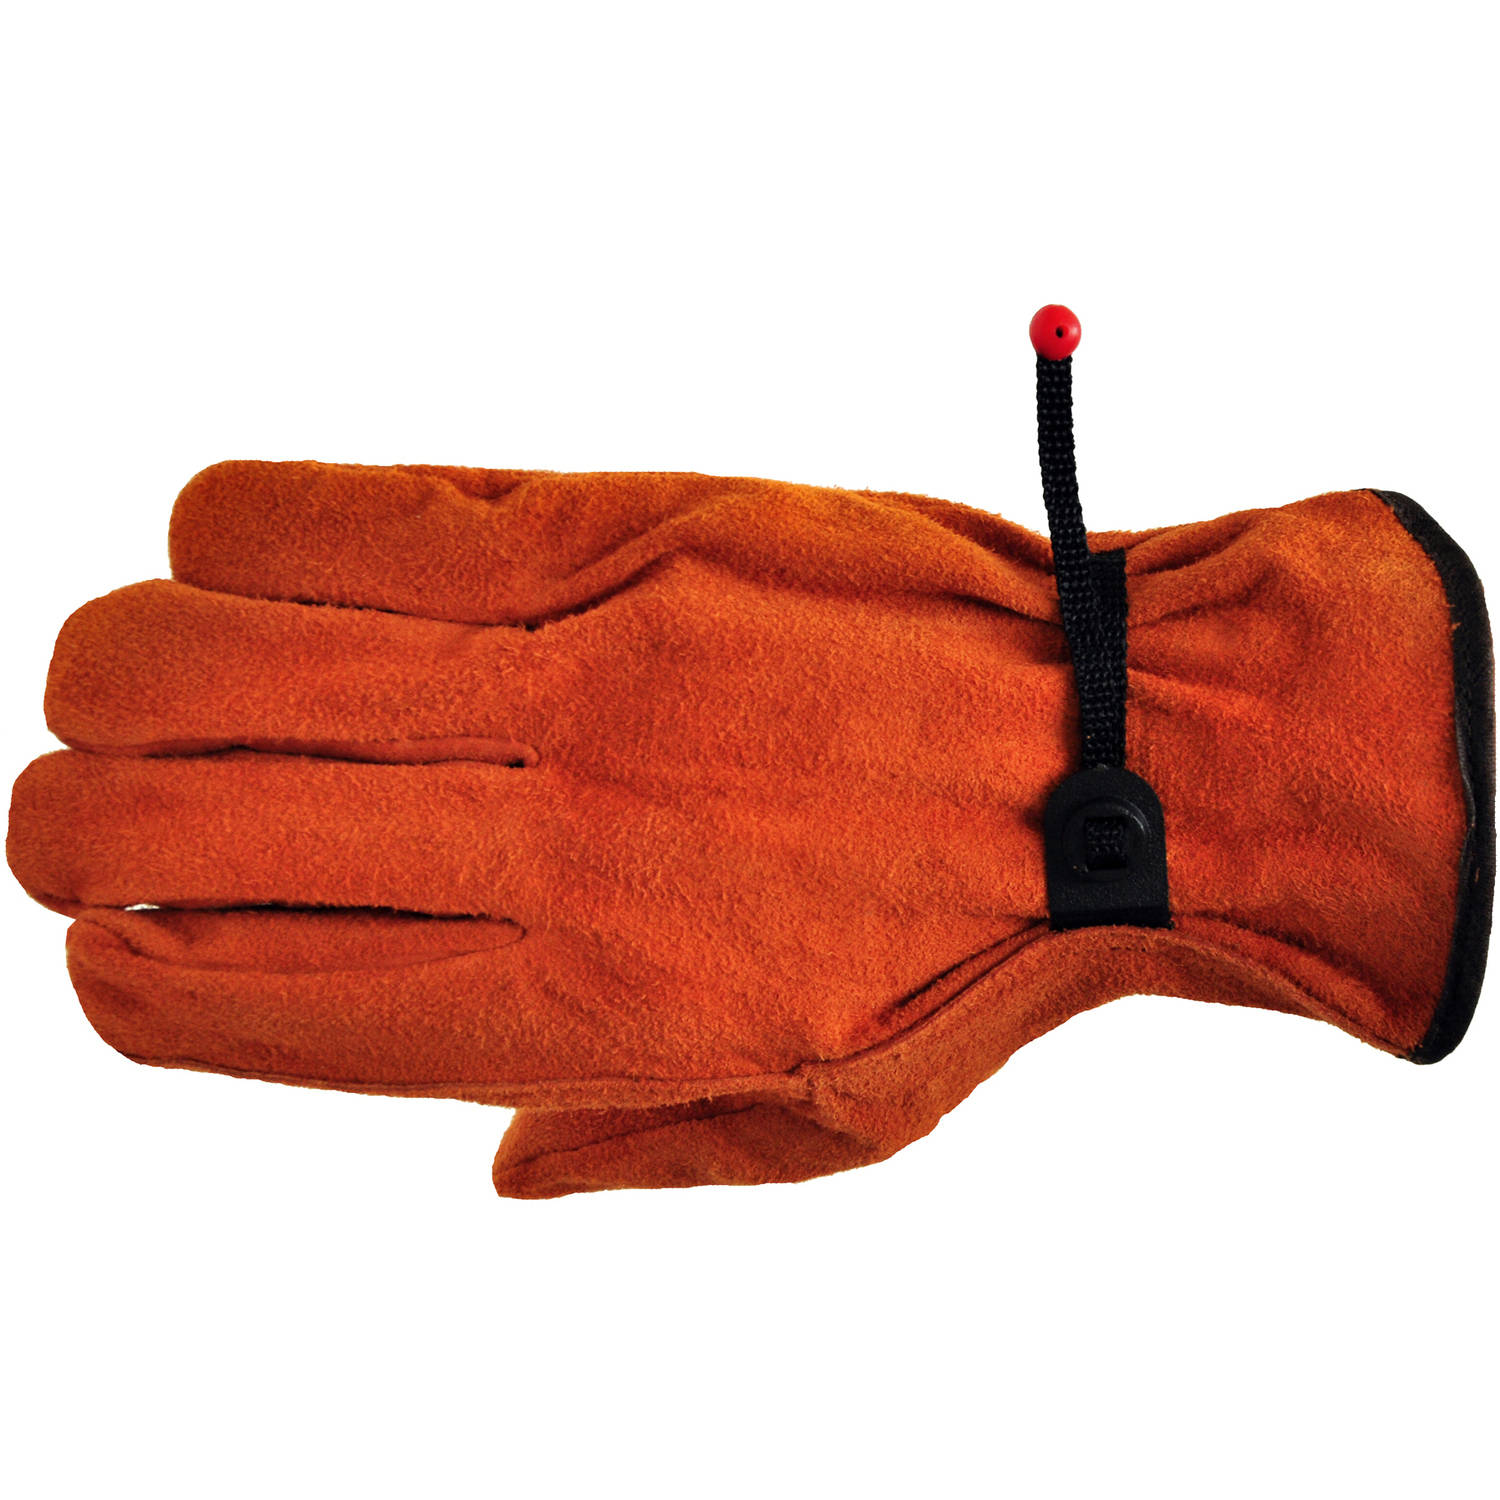 G & F Split Cowhide Leather Gloves with Ball and Tape, Straight Thumb, Large, 3 Pairs